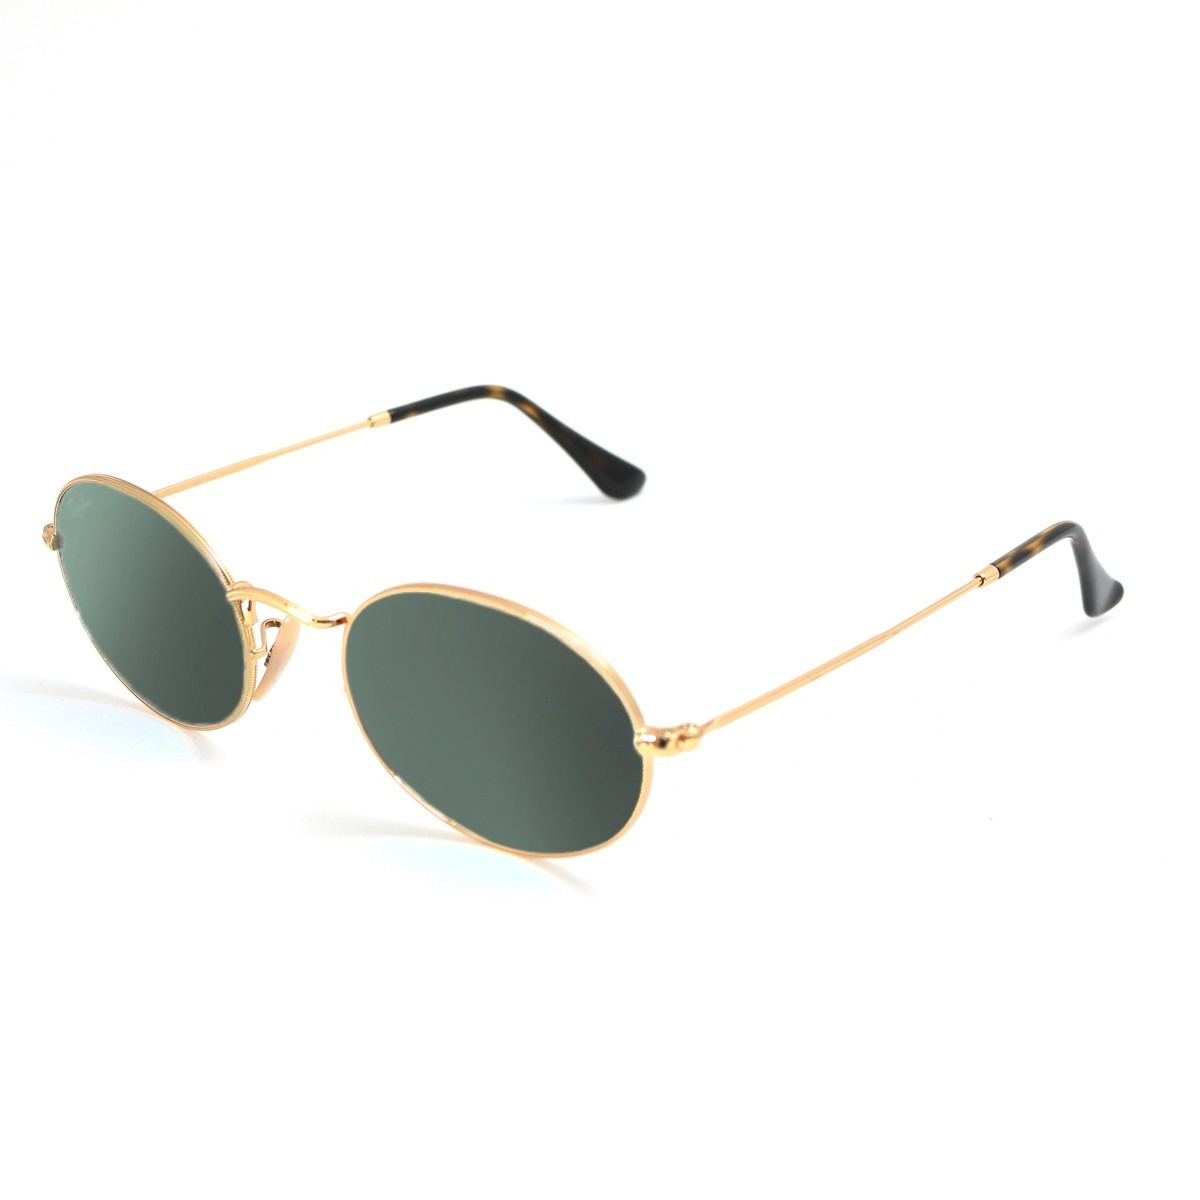 Anteojos Ray Ban Round Metal Oval Flat Rb3547n Lentes Sol -   3.131 ... 5a964cfcd6